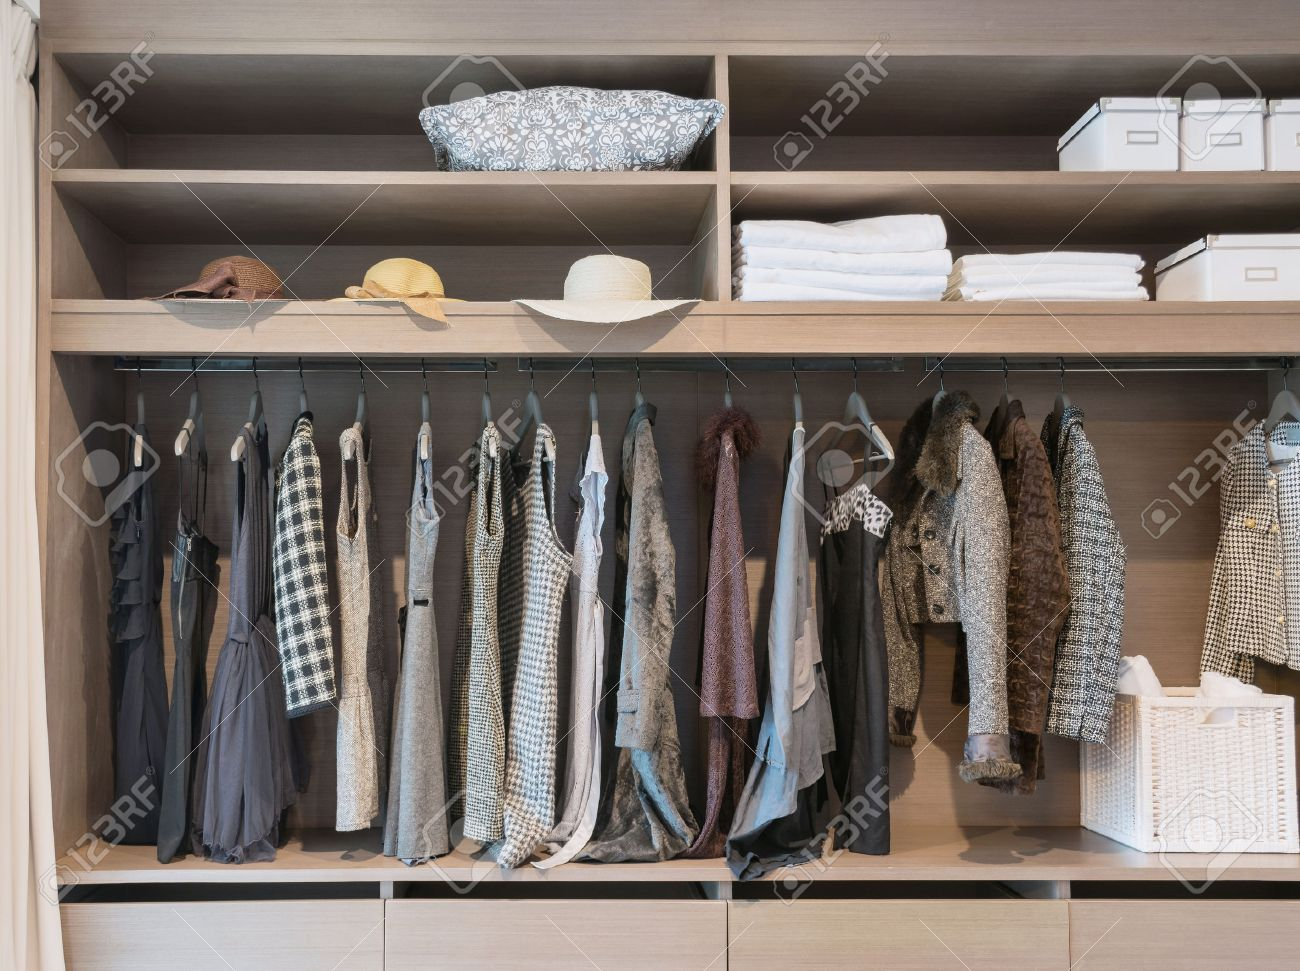 Modern Closet With Row Of Dress Hanging On Coat Hanger In Wardrobe. Stock  Photo